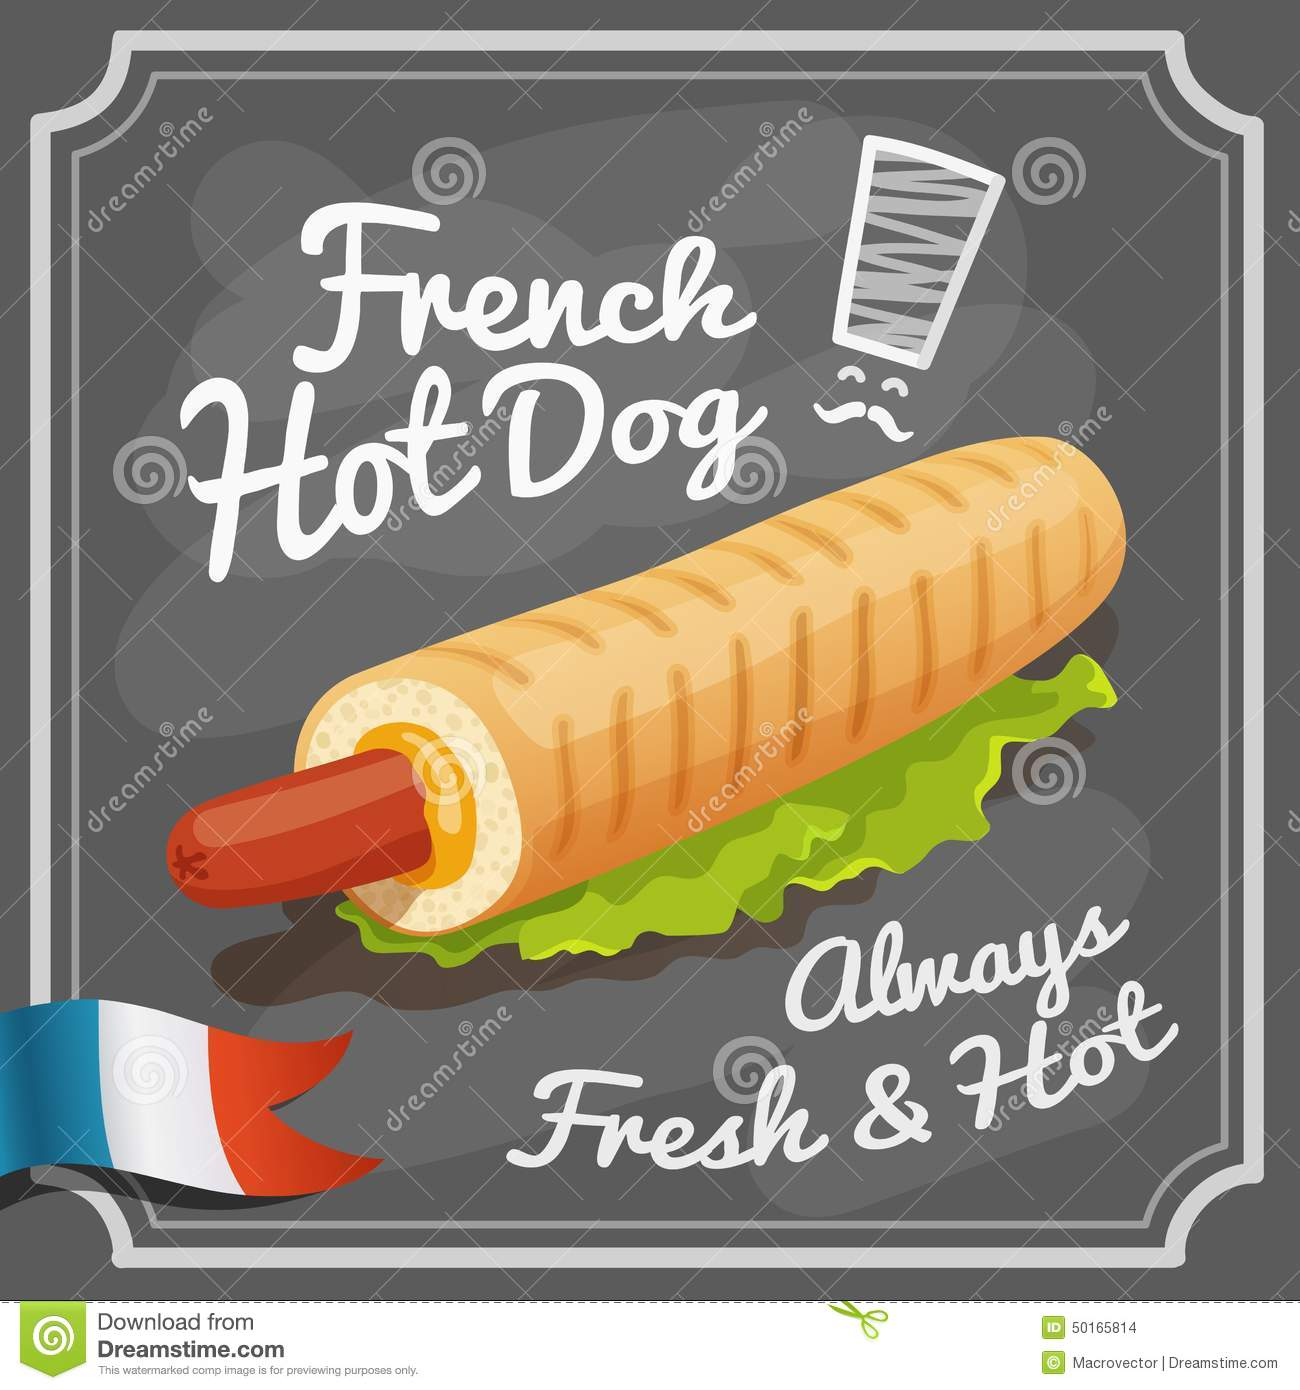 Where To Buy French Hot Dog Buns